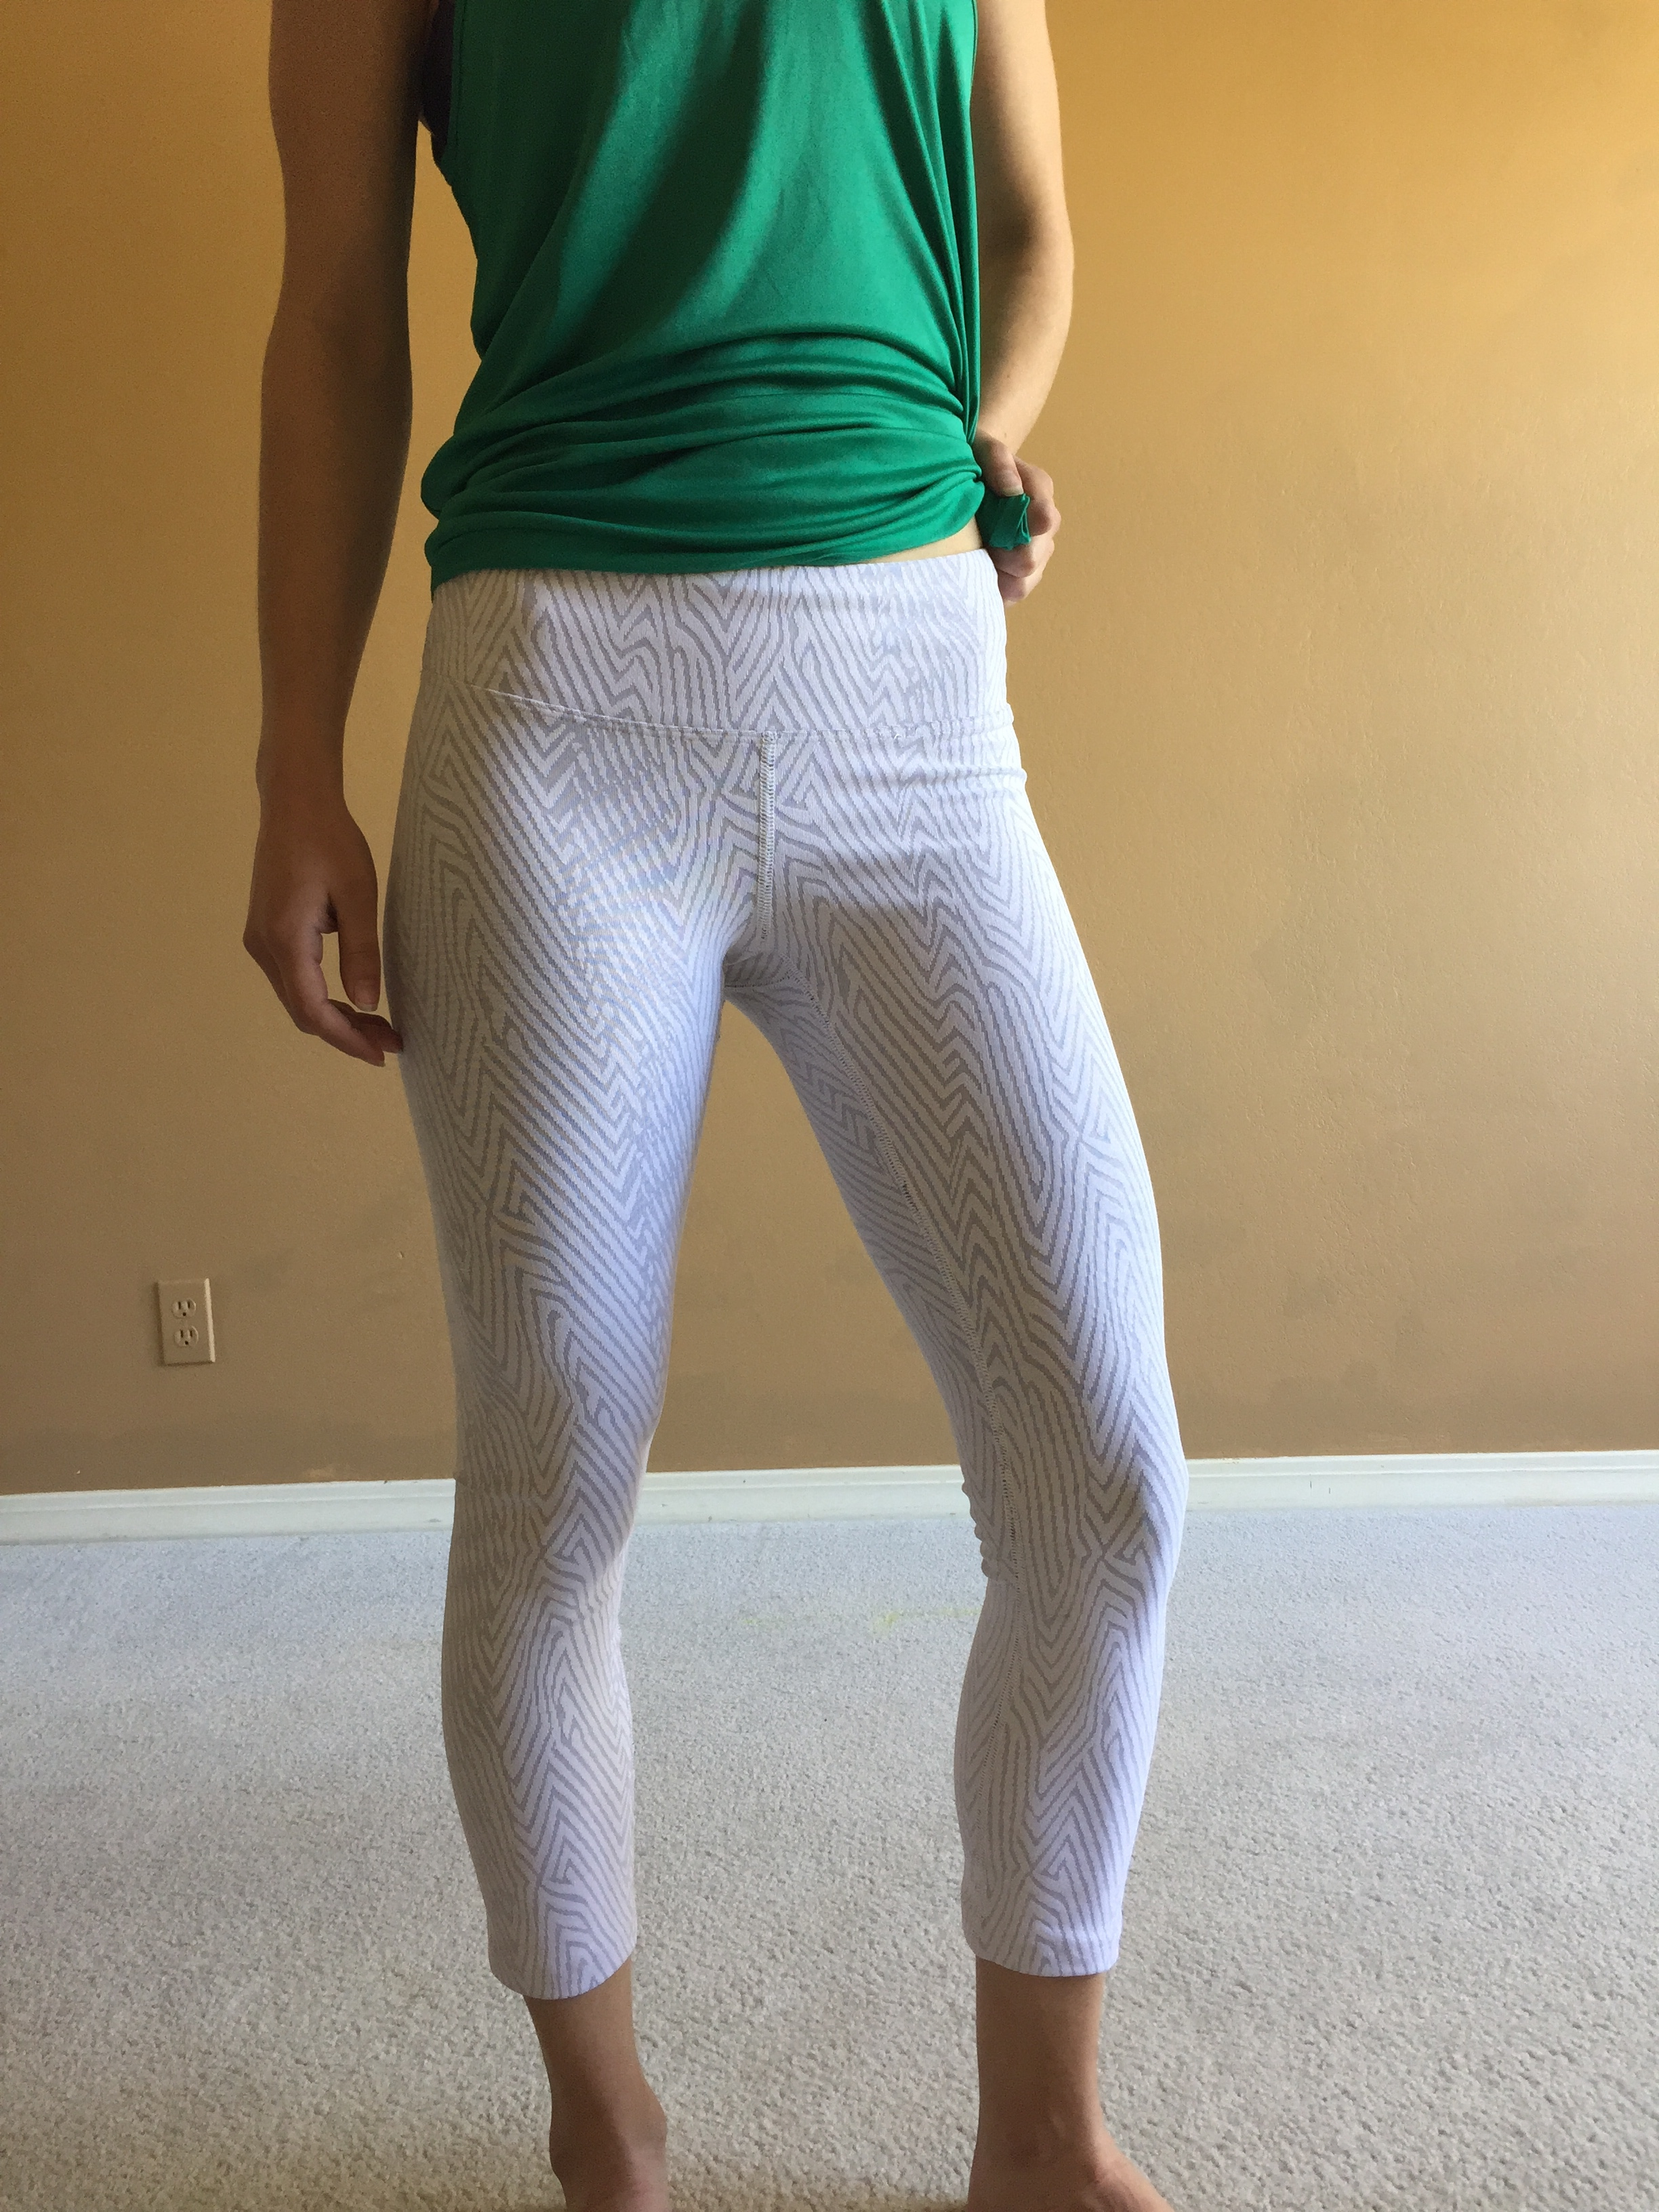 Koral Activewear gauge capris review